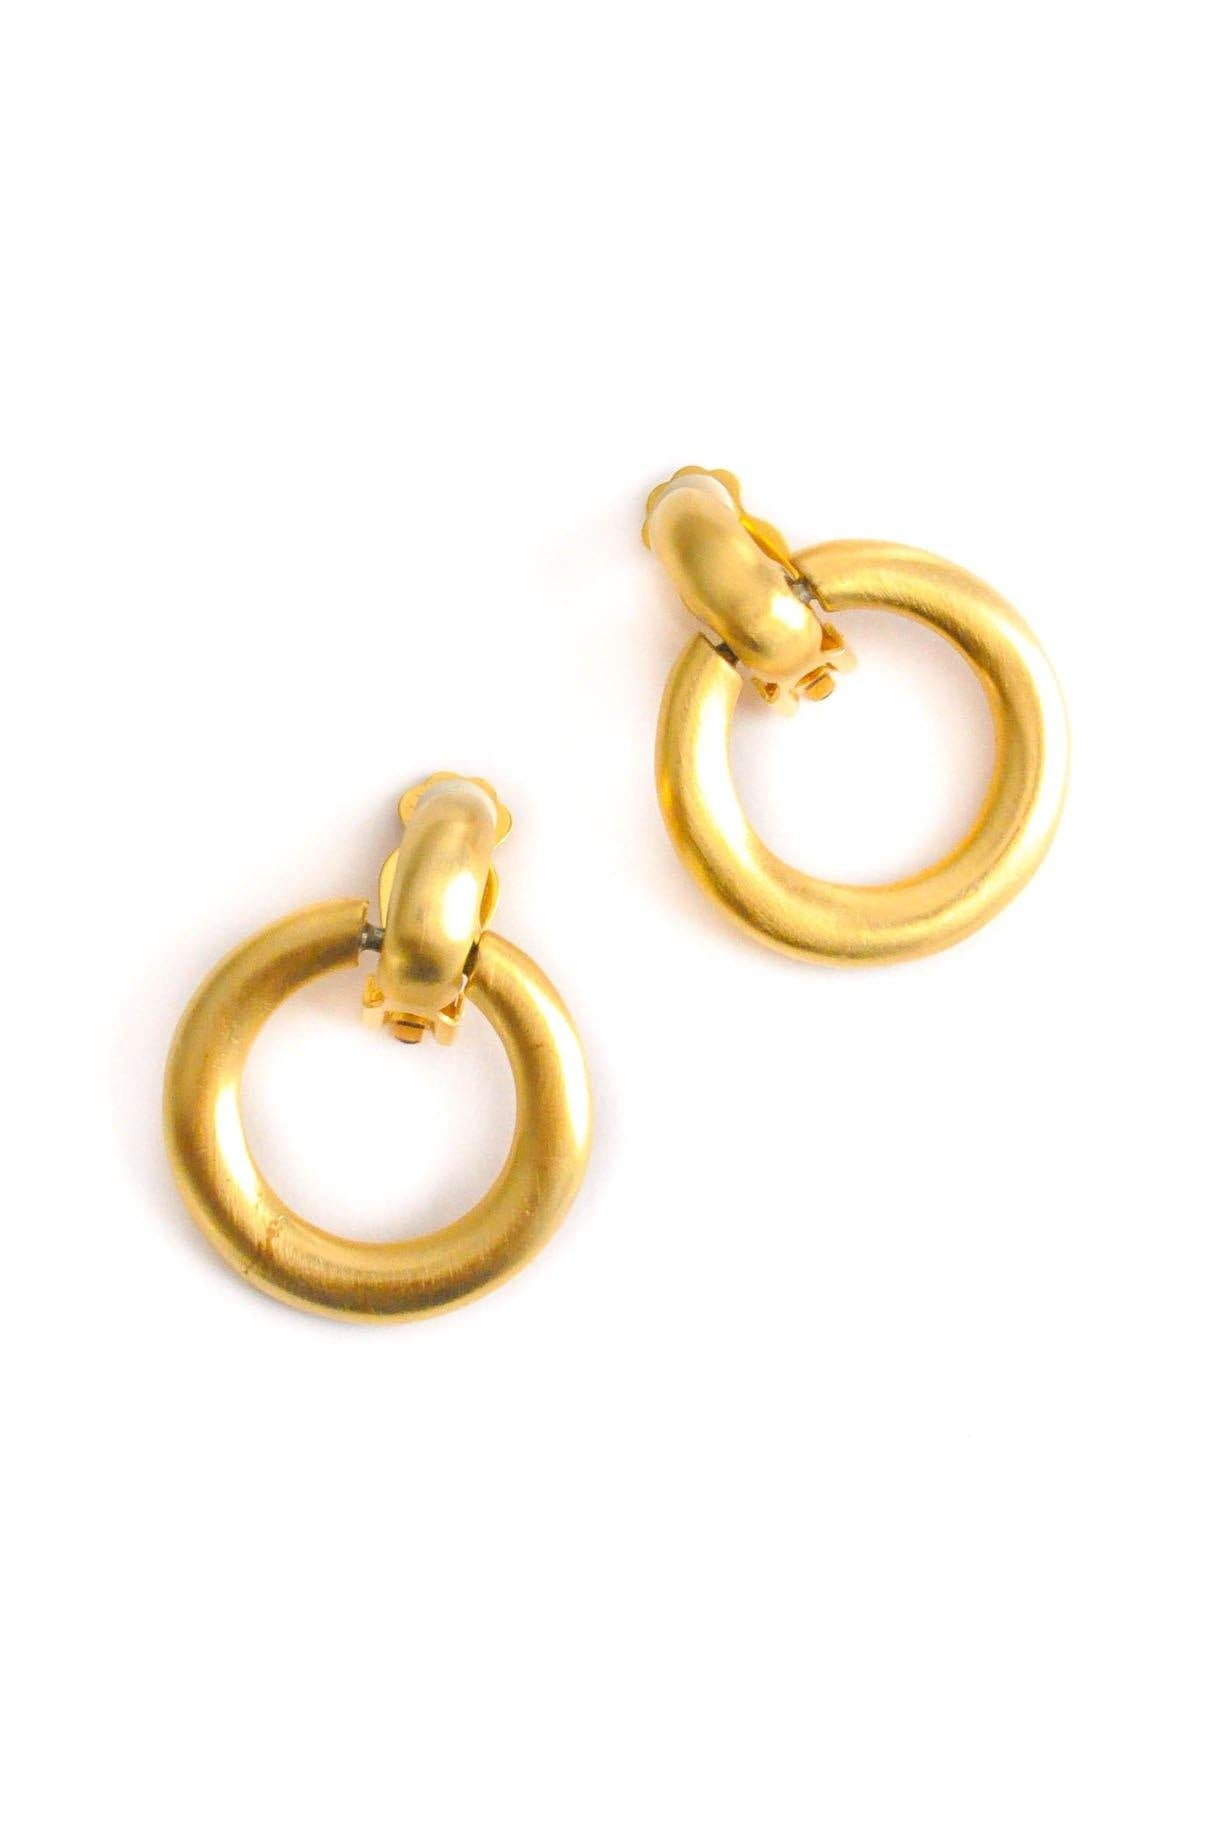 Vintage Kenneth Jay Lane Matte Clip on Hoop Earrings from Sweet and Spark